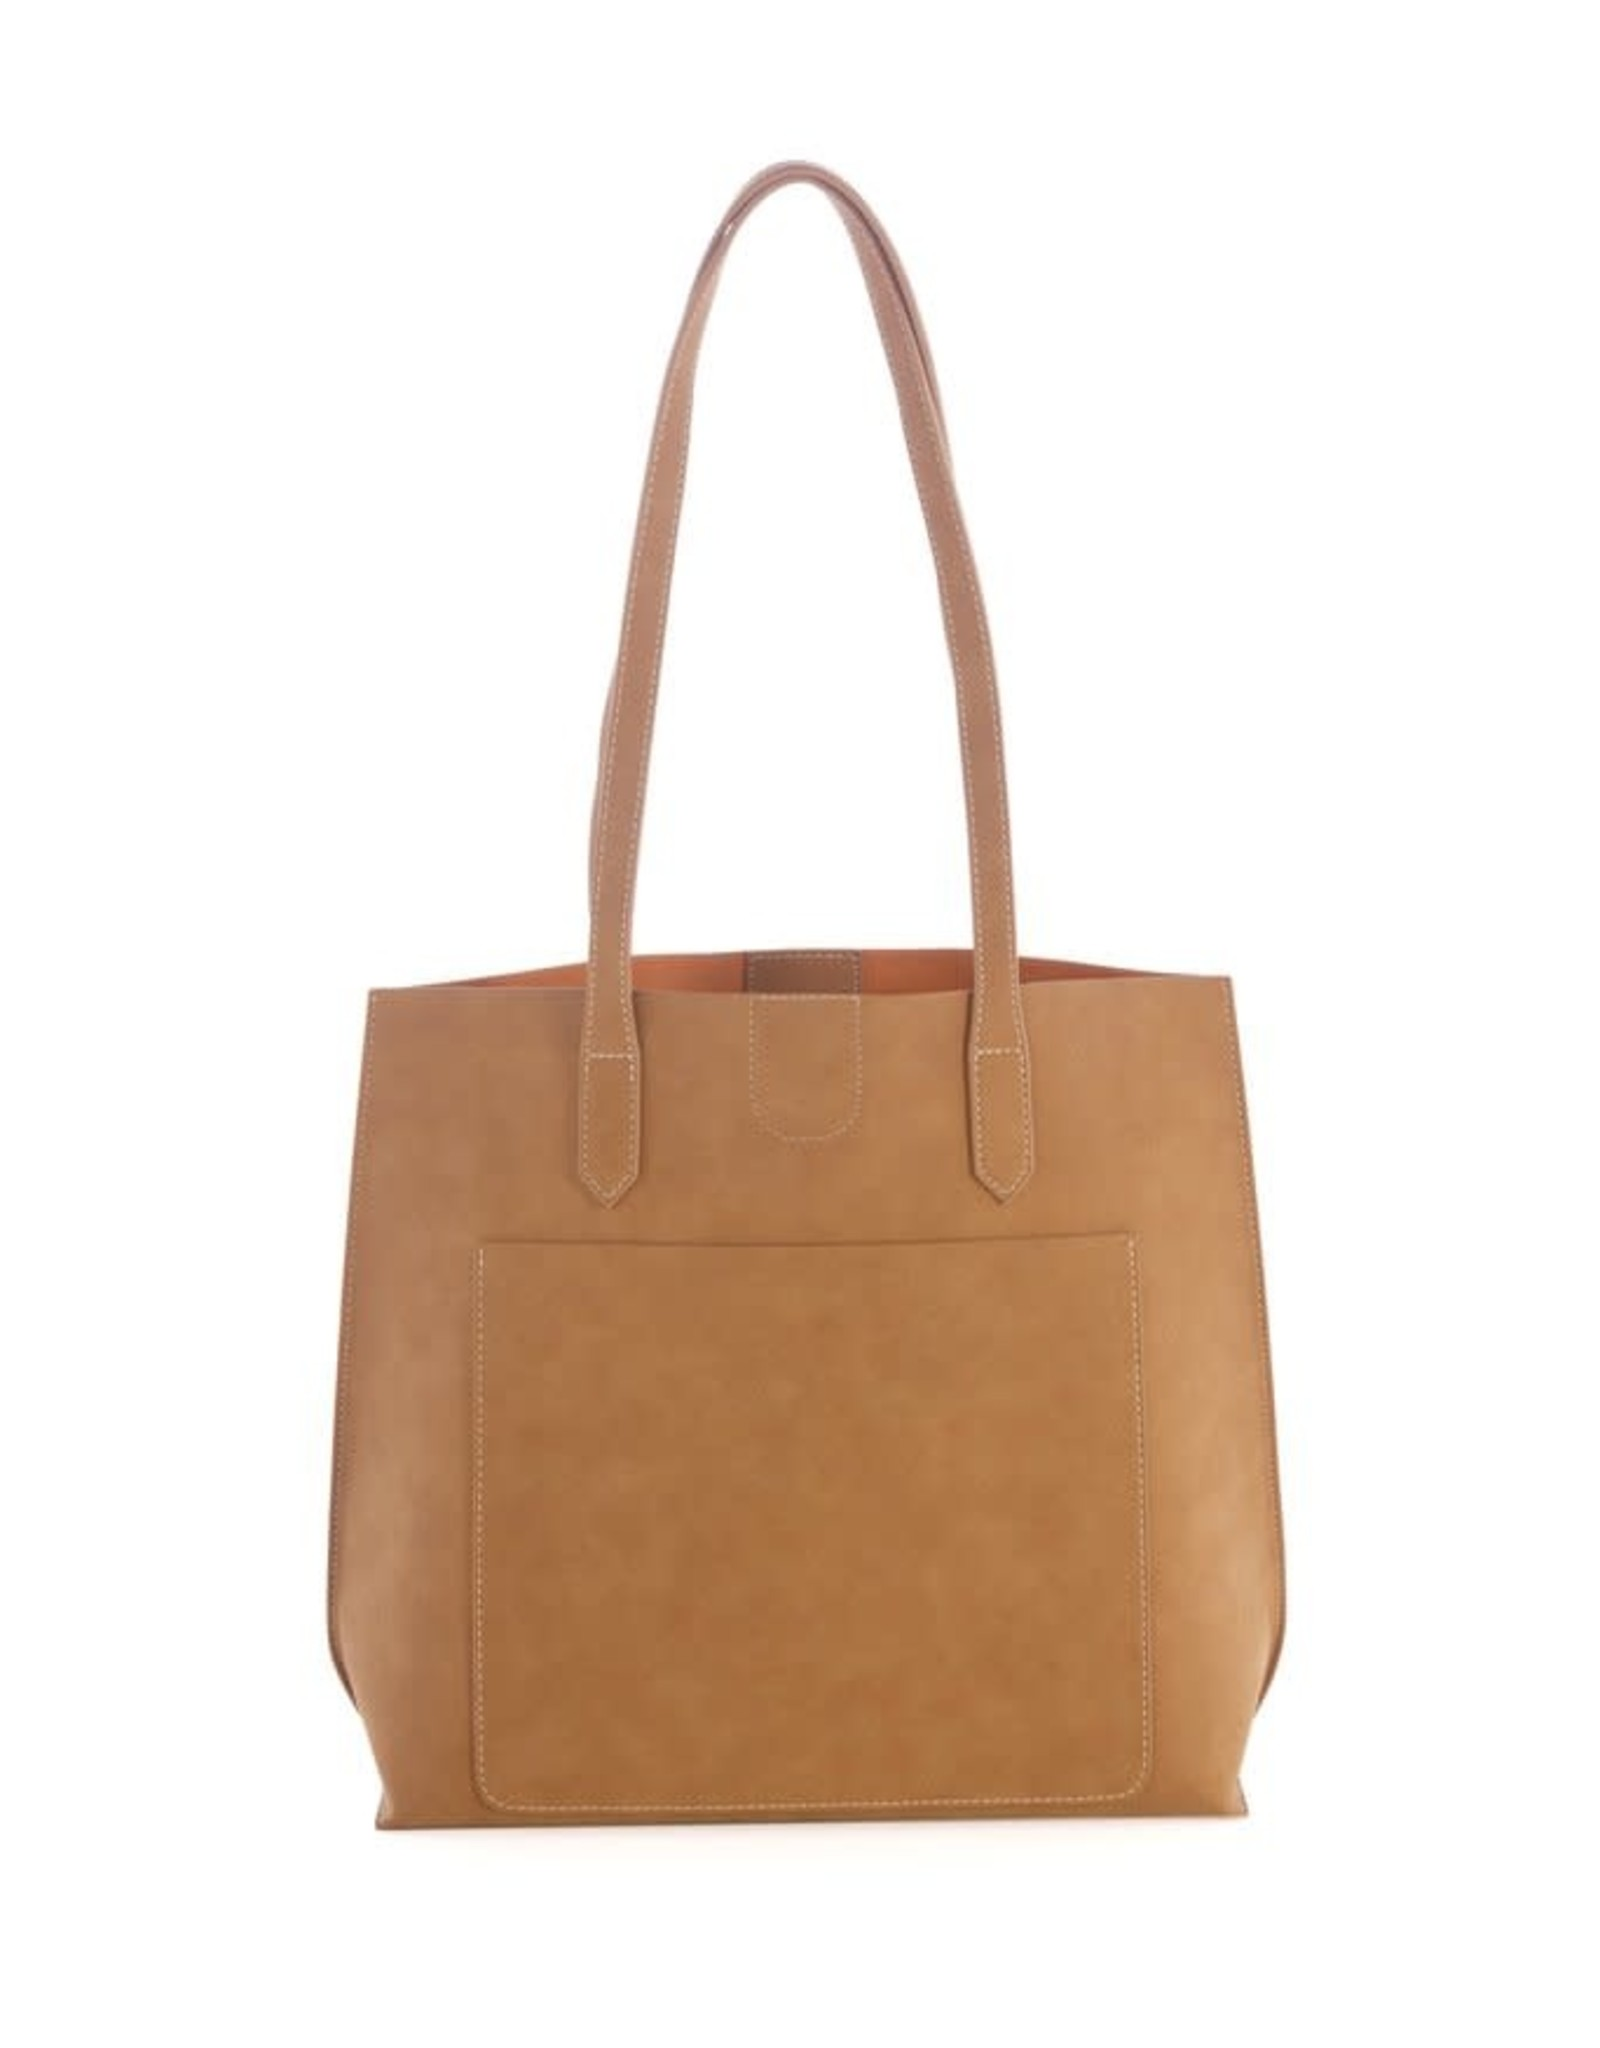 The Day Tote in 4 Colors